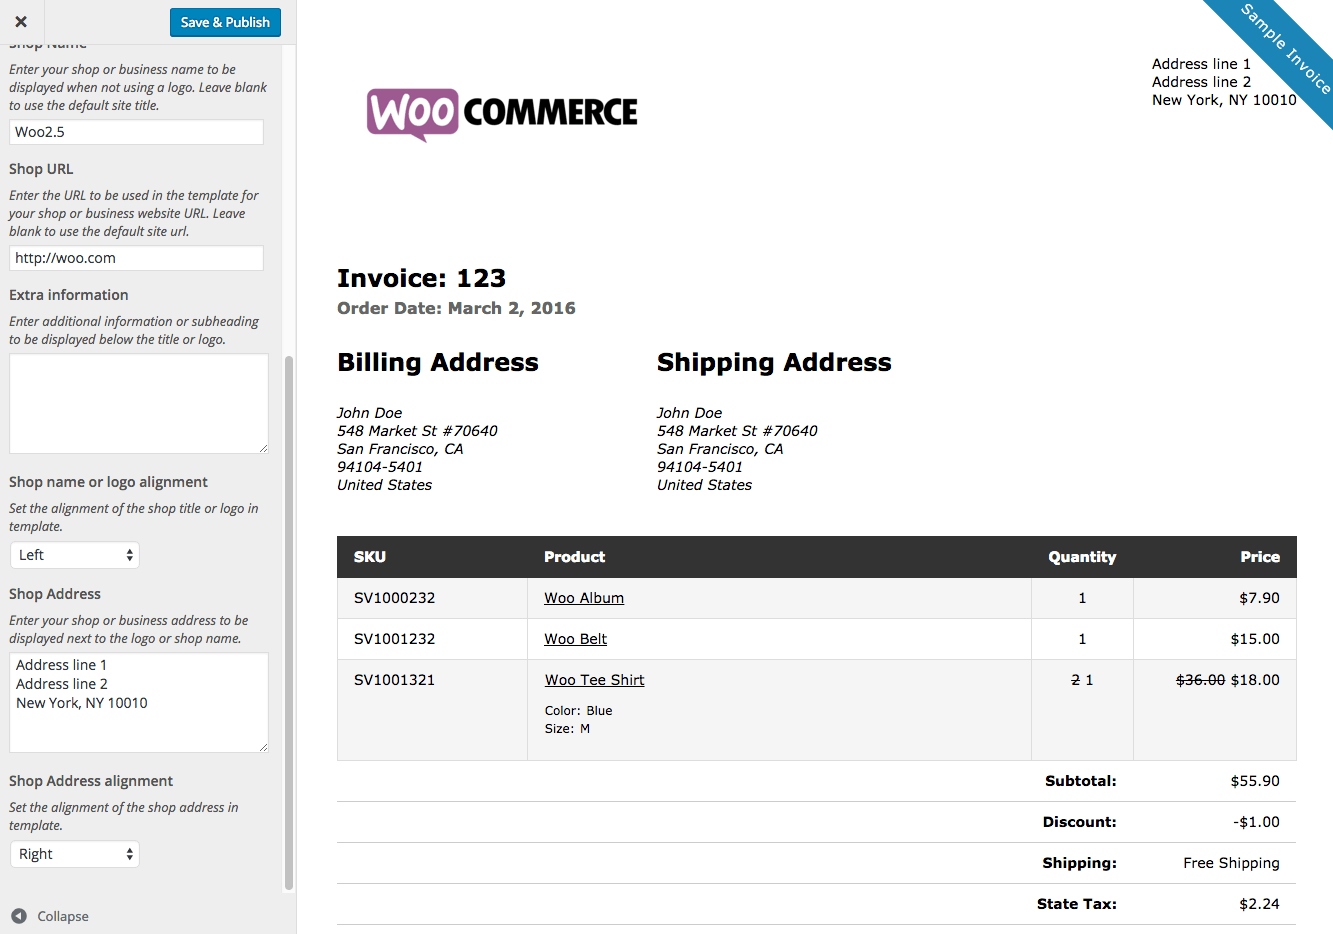 Usdgus  Scenic Print Invoices Amp Packing Lists  Woocommerce With Interesting Woocommerce Print Invoices  Packing Lists Customizer With Enchanting Requirements For Tax Invoice Also Xero Api Invoice In Addition What Is Po Invoice And Proforma Invoice Meaning In English As Well As Non Gst Invoice Additionally Software To Make Invoices From Woocommercecom With Usdgus  Interesting Print Invoices Amp Packing Lists  Woocommerce With Enchanting Woocommerce Print Invoices  Packing Lists Customizer And Scenic Requirements For Tax Invoice Also Xero Api Invoice In Addition What Is Po Invoice From Woocommercecom